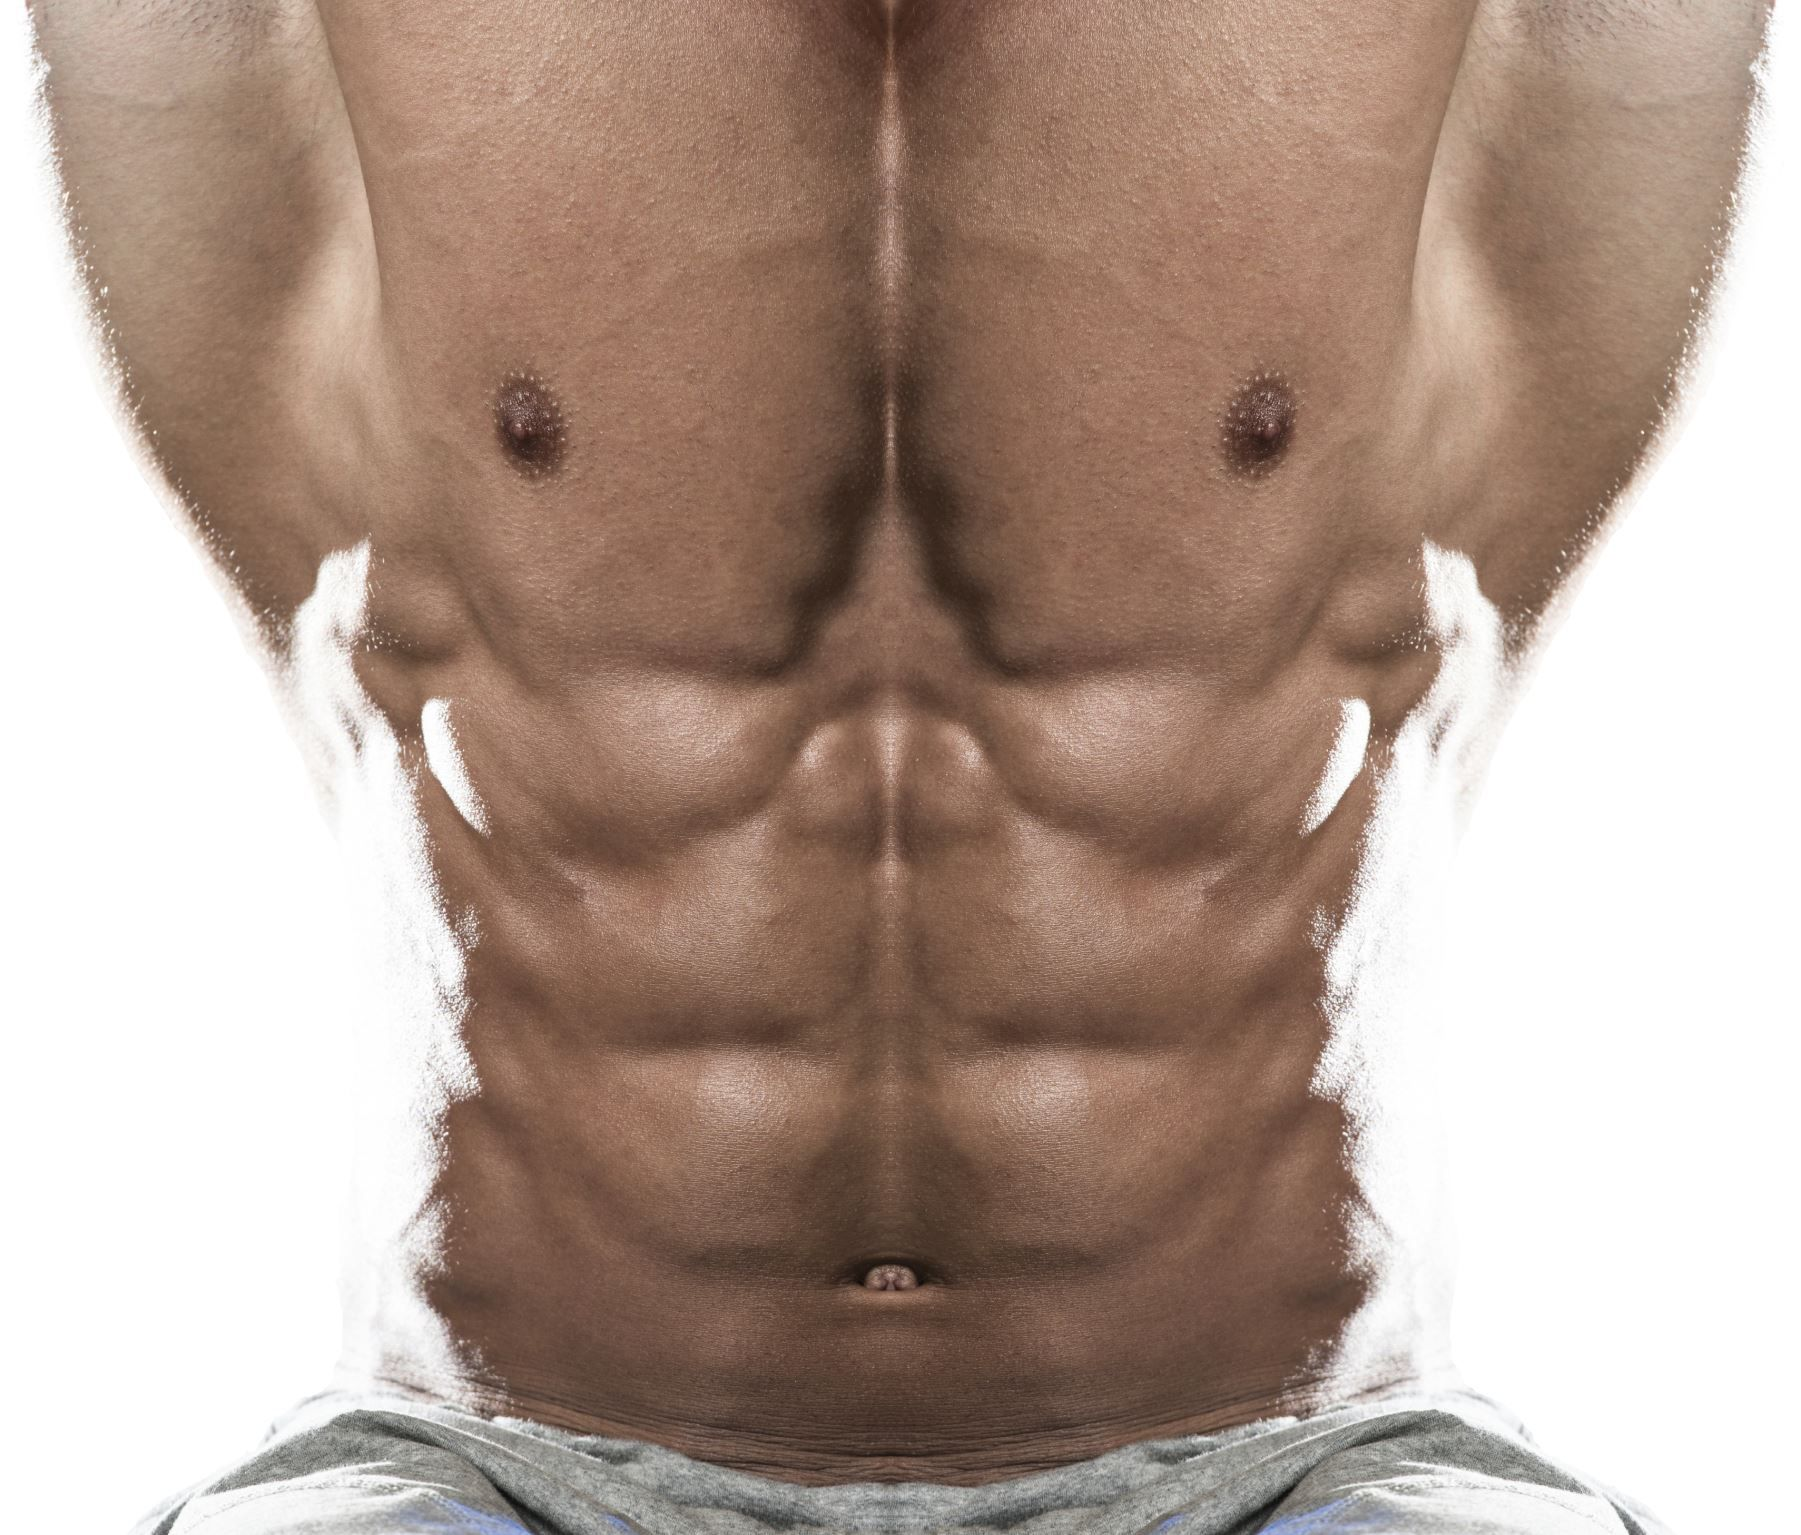 FULL ABS WORKOUT AT HOME  SIX PACK ABS - YouTube